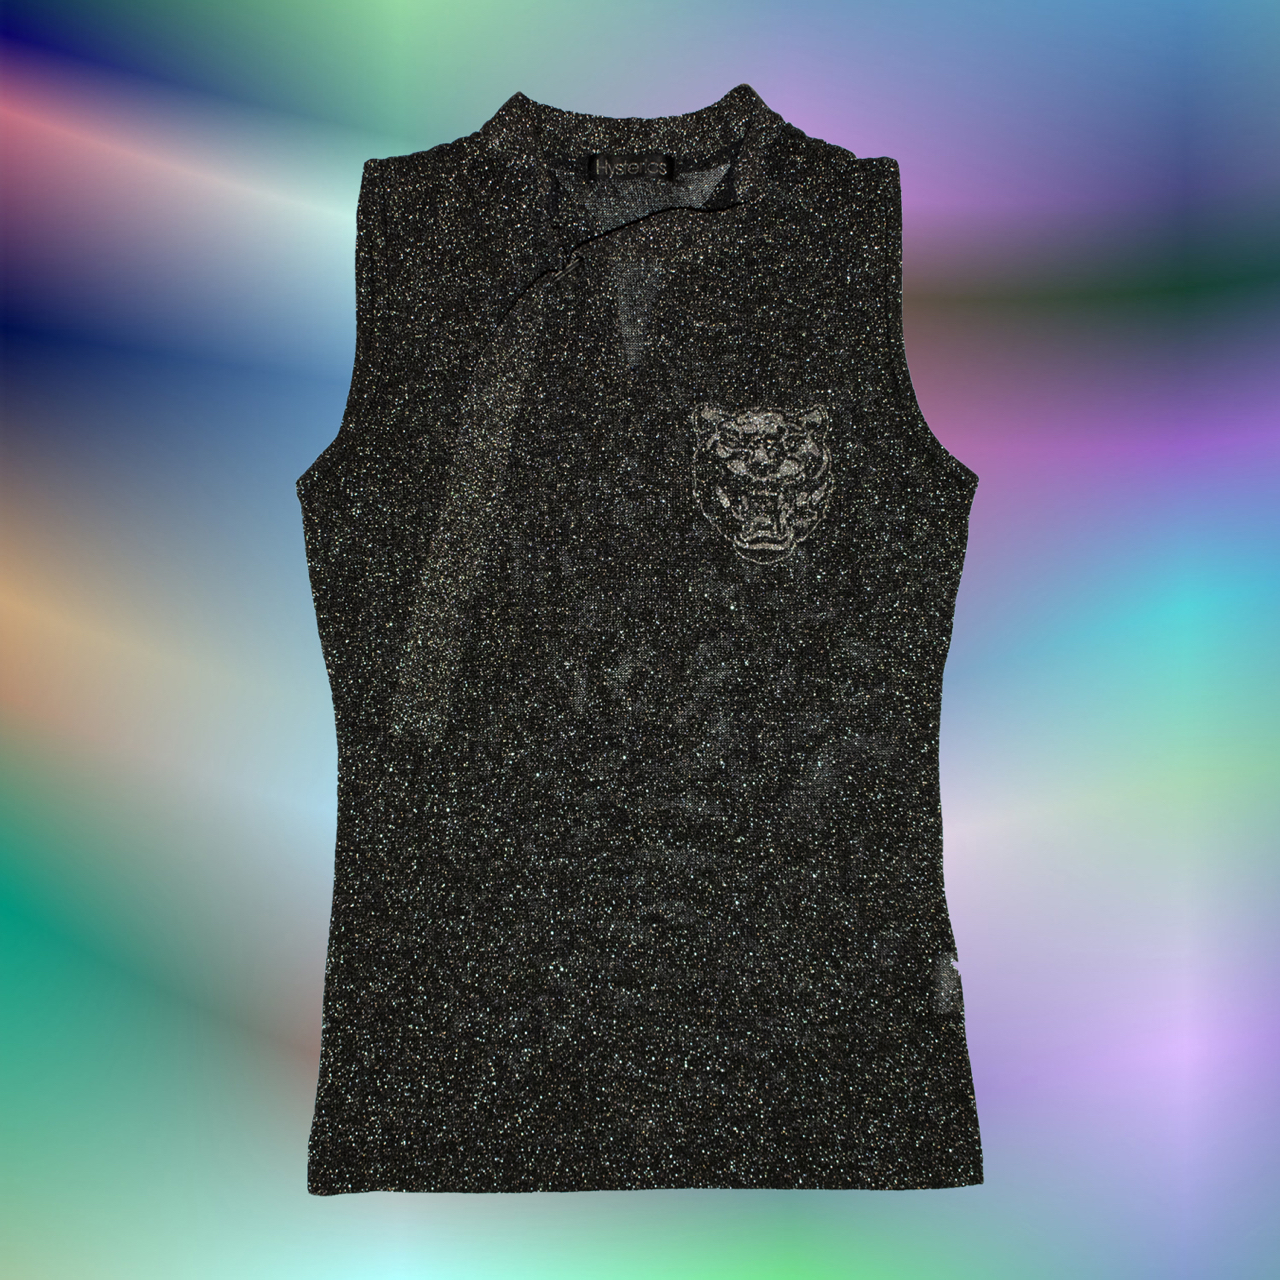 Product Image 1 - Hysteric Glamour Bobcat Shimmer Top